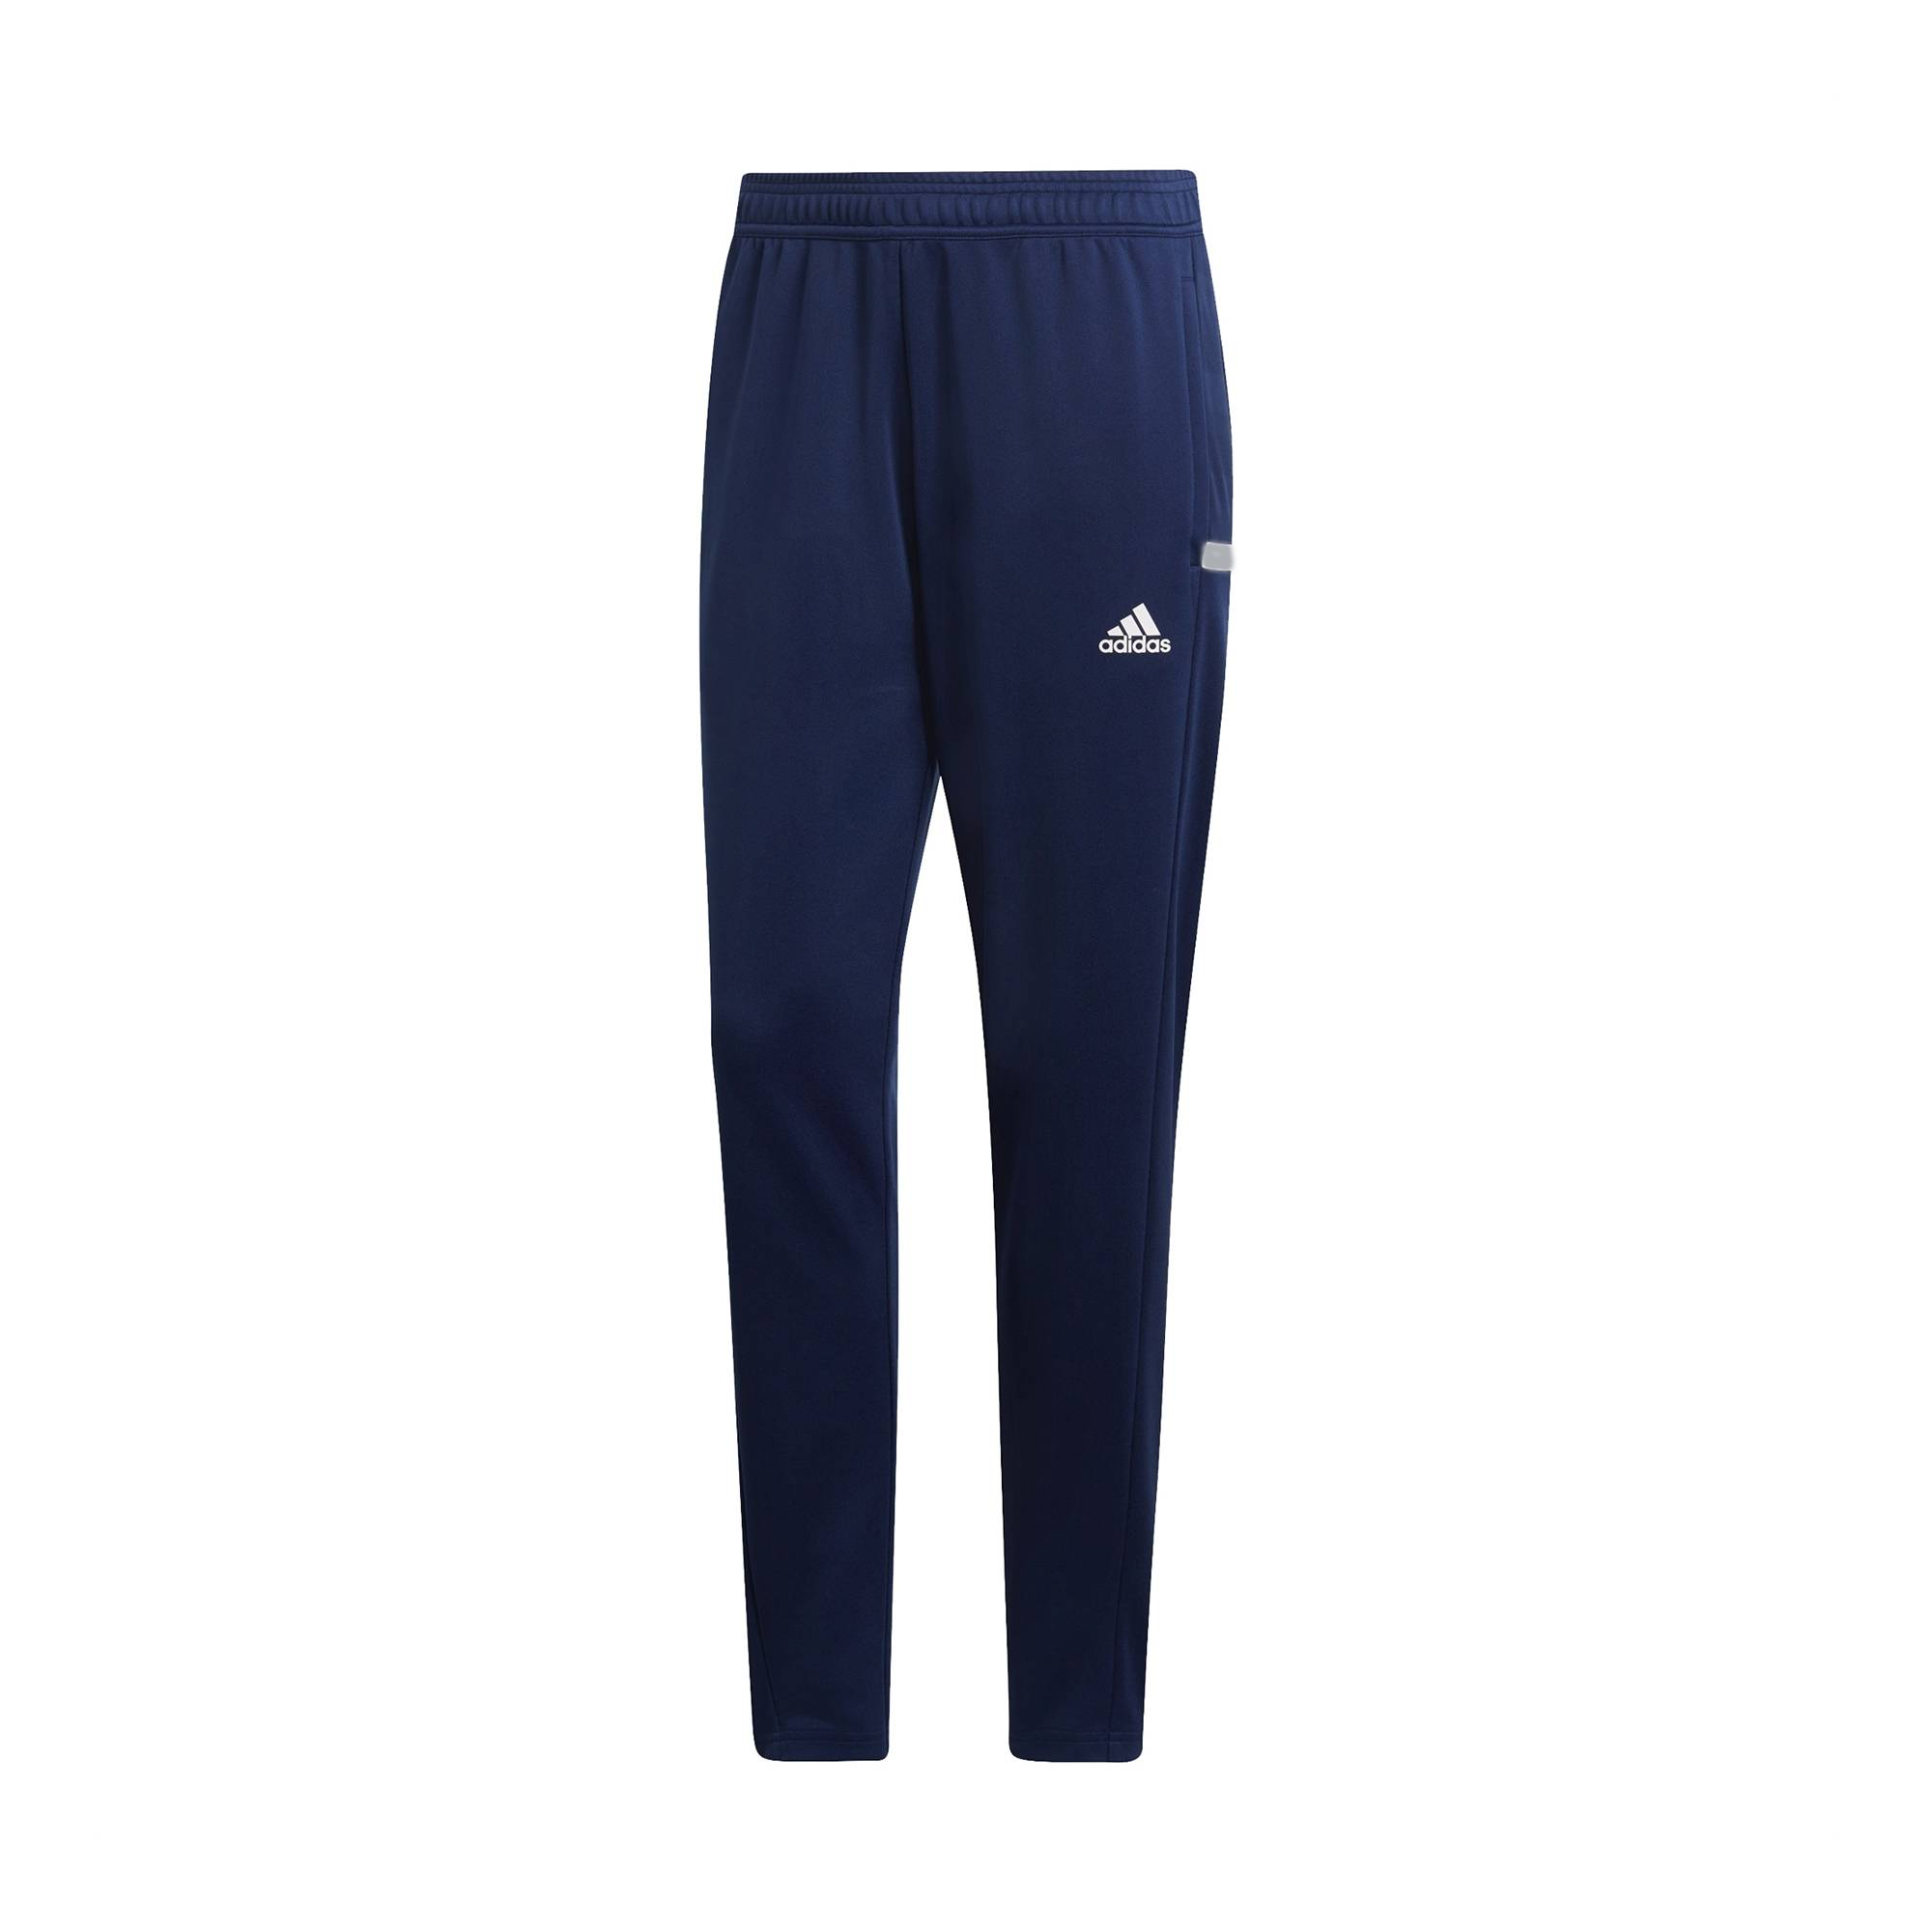 Image of Adidas T19 Track Pant Women Navy M